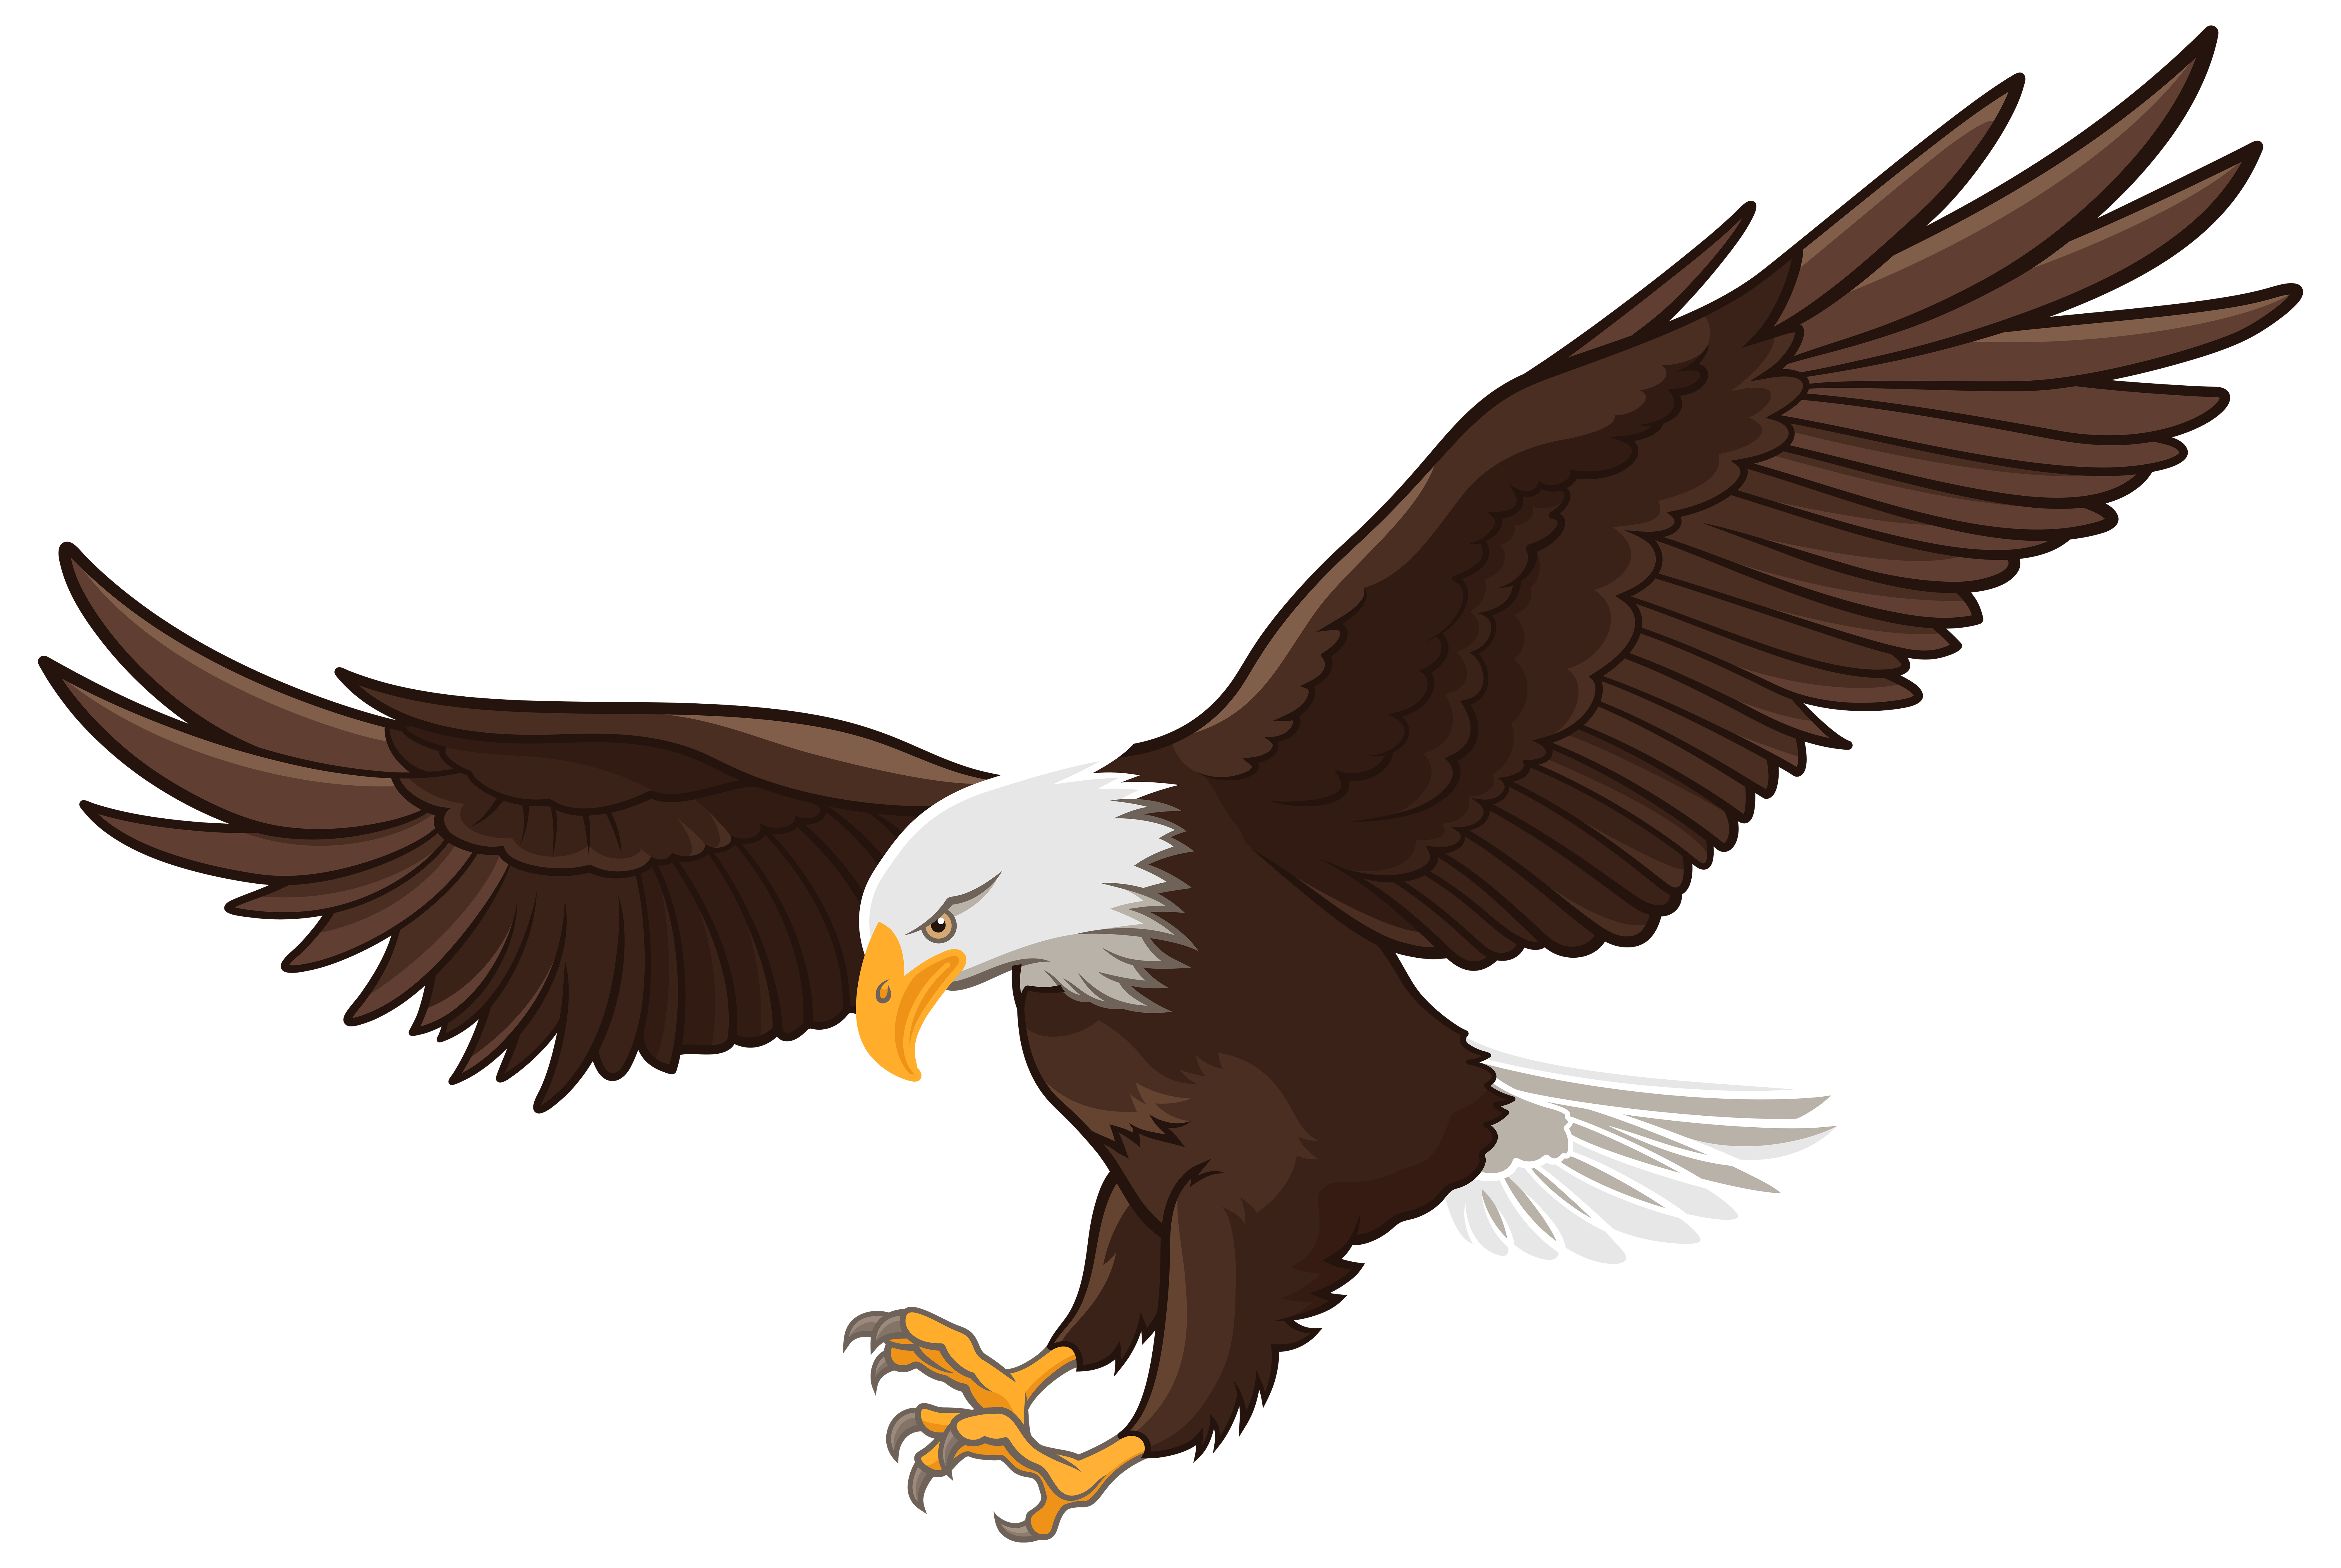 Clipart eagle free picture freeuse download Top bald eagle clip art free clipart image - ClipartBarn picture freeuse download